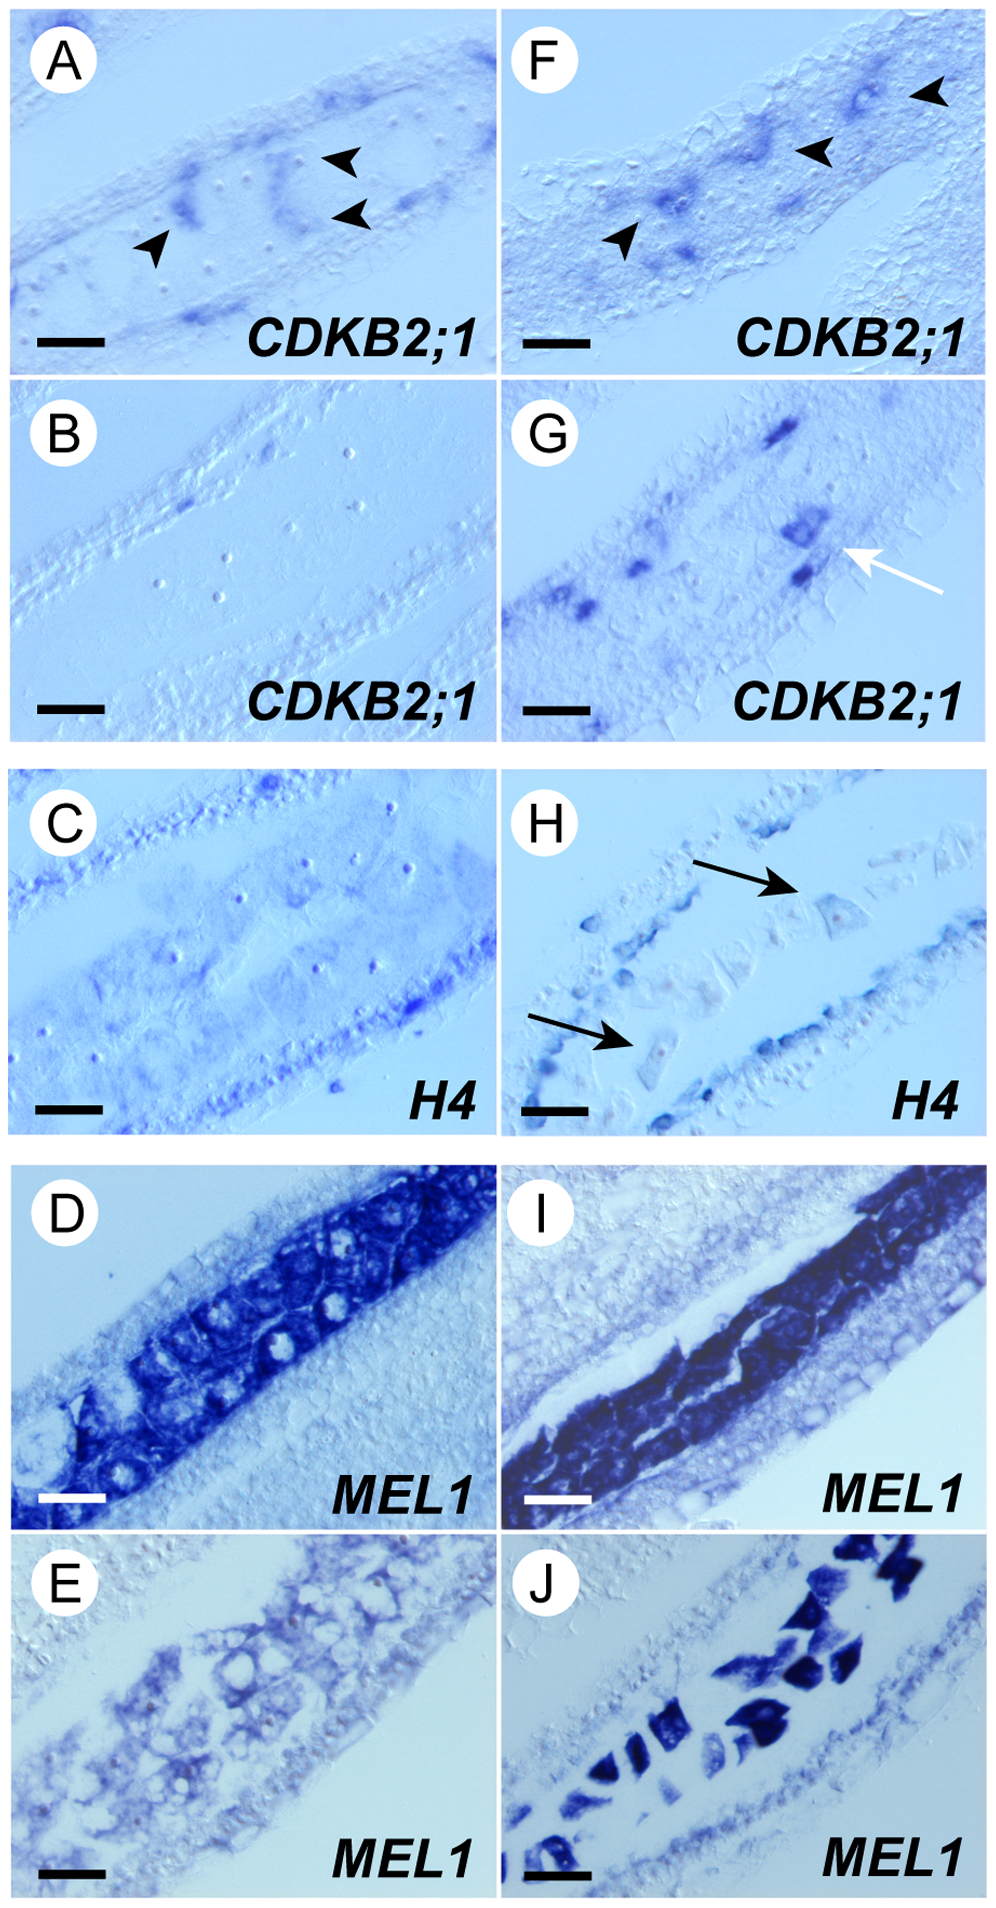 Synchronous initiation of premeiotic S was disrupted among <i>mel2</i> germ cells.